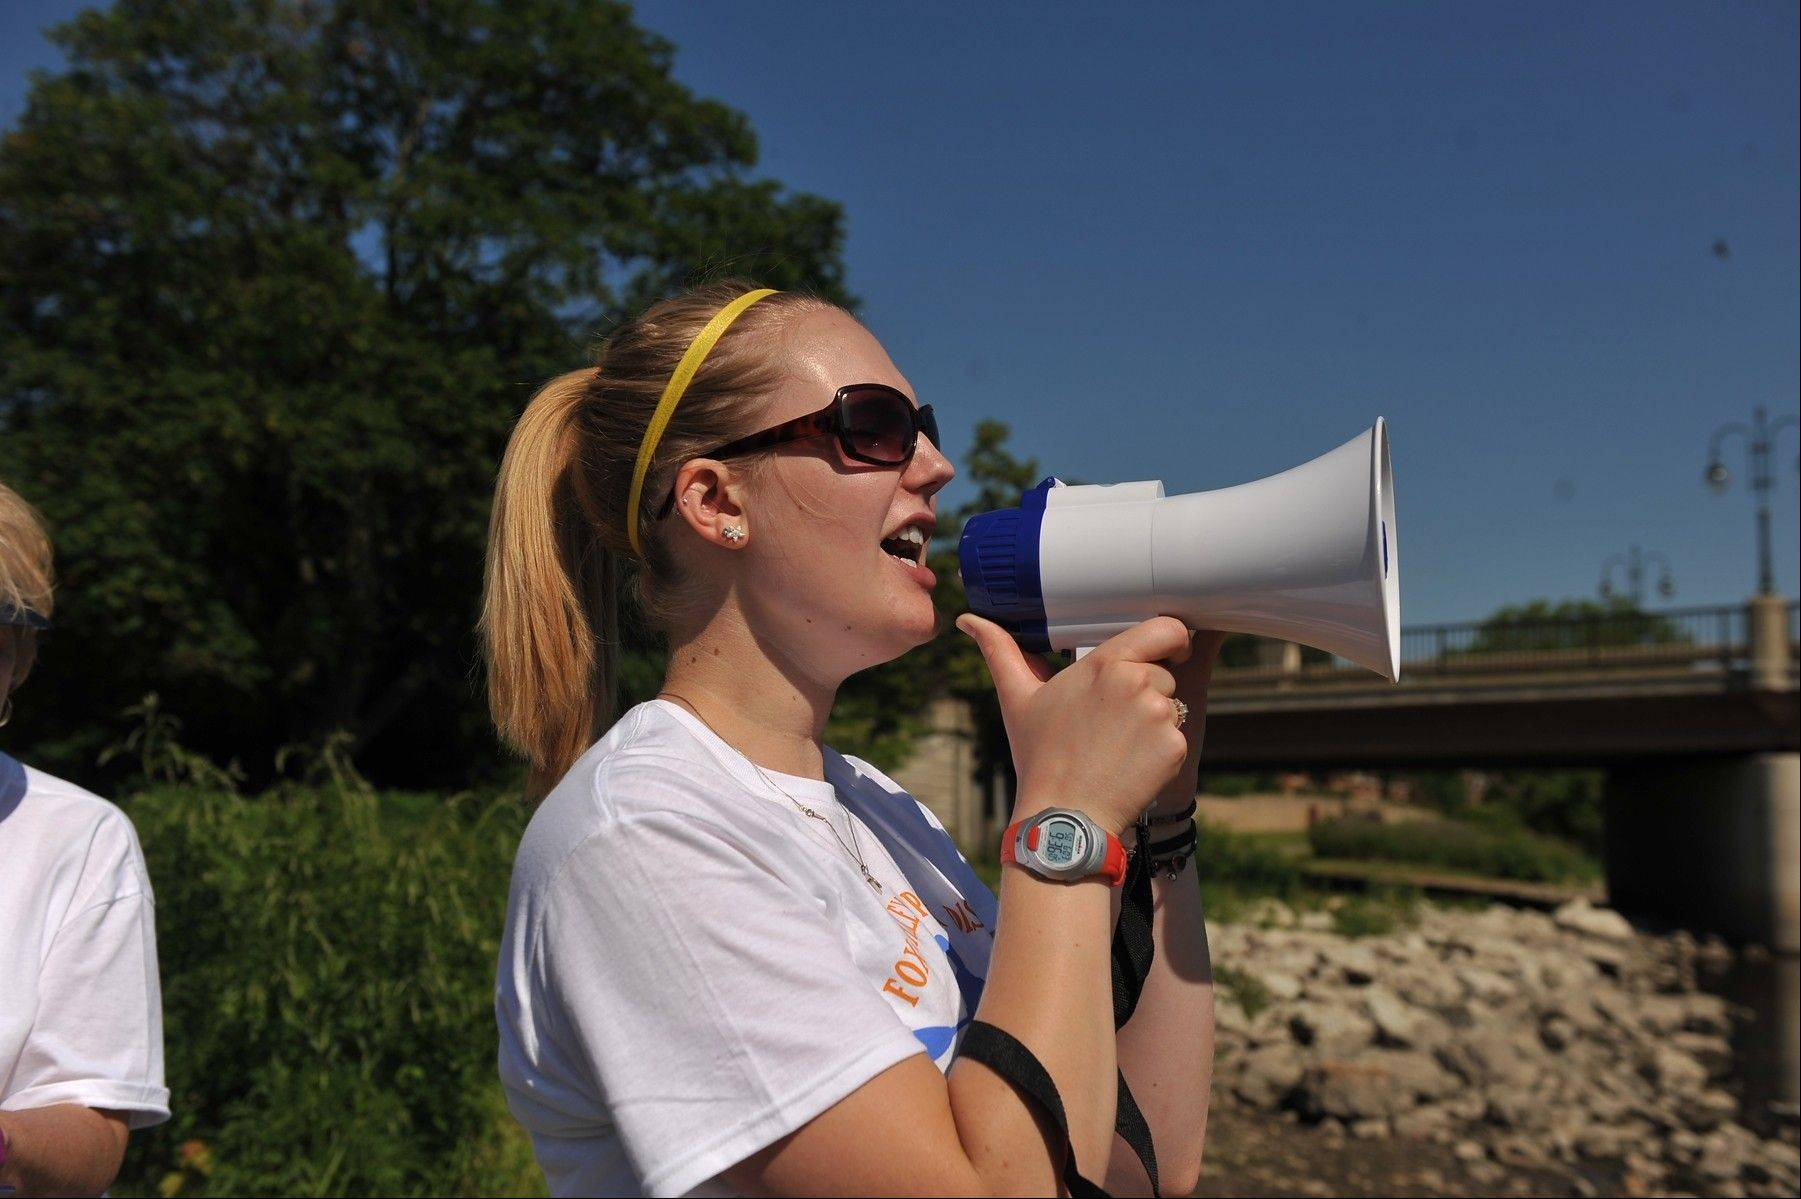 College student Kristina Vann worked in several different capacities as the summer marketing assistant at the Fox Valley Park District, including her role as starter at the Mid-American Canoe and Kayak Race this past June.